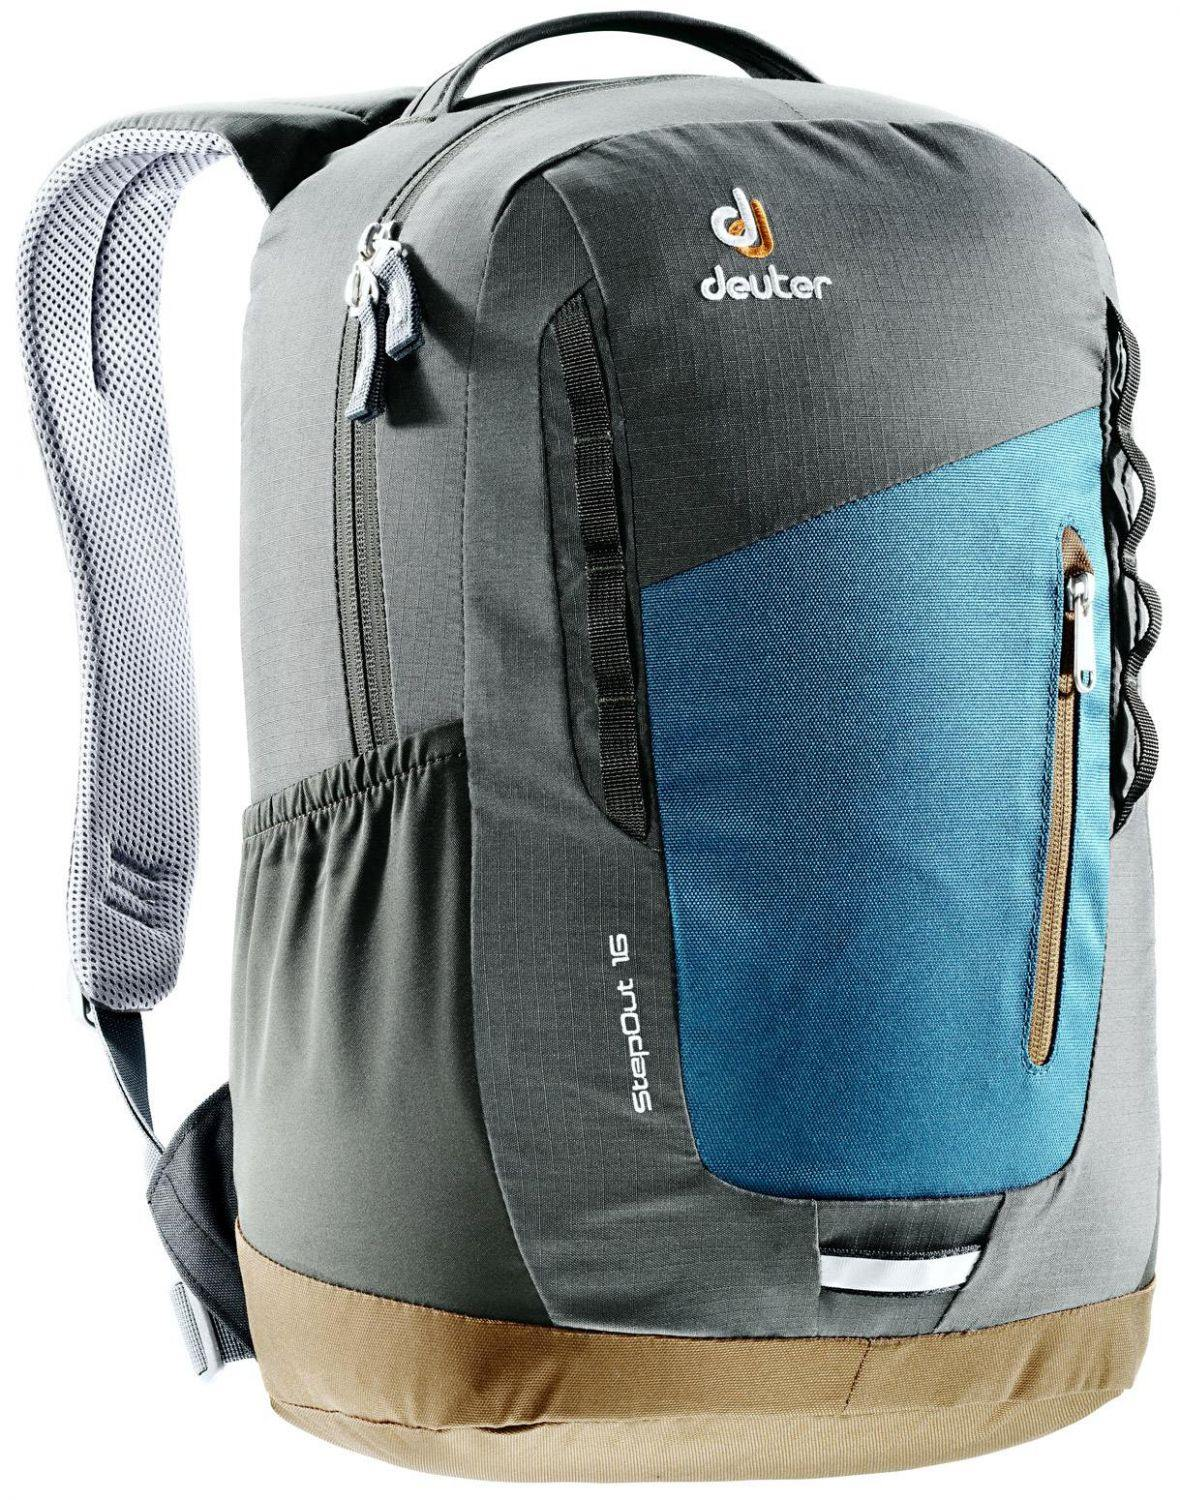 Deuter StepOut 16 Multifunktionsrucksack (Farbe: 3621 arctic/coffee)